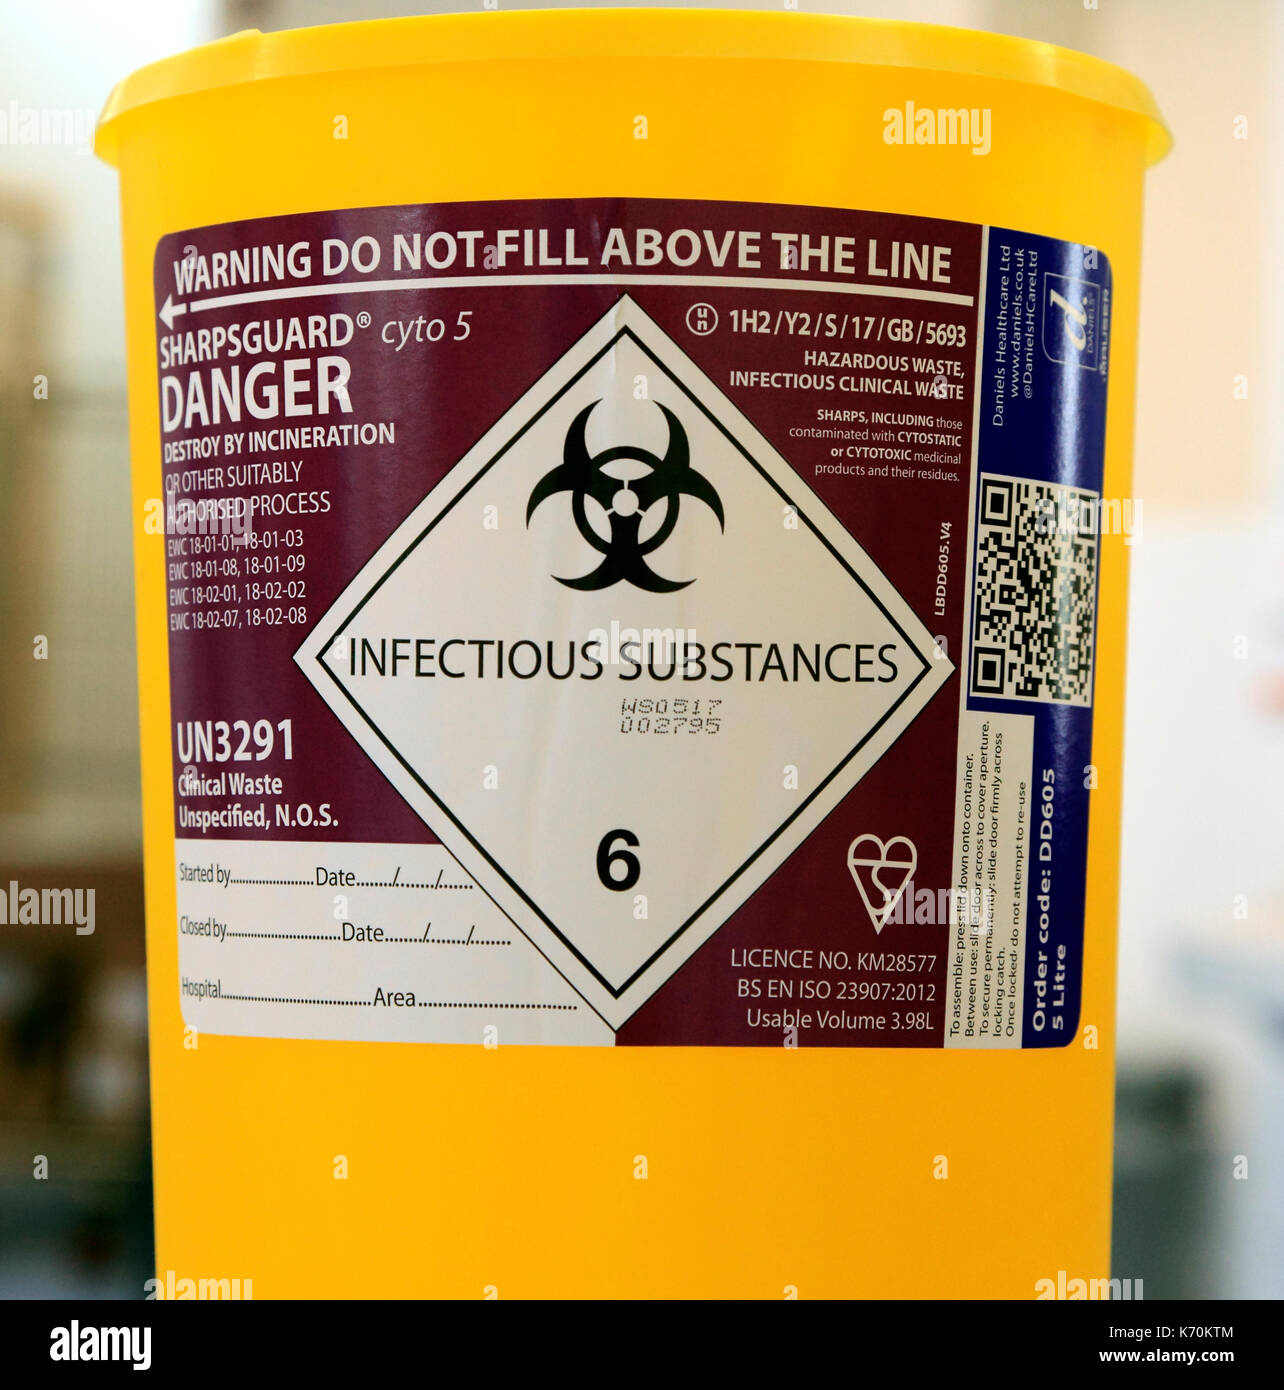 Infectious Substances, container, health, hazard,  destroy by incineration, hospital, medical, safety, England, UK - Stock Image